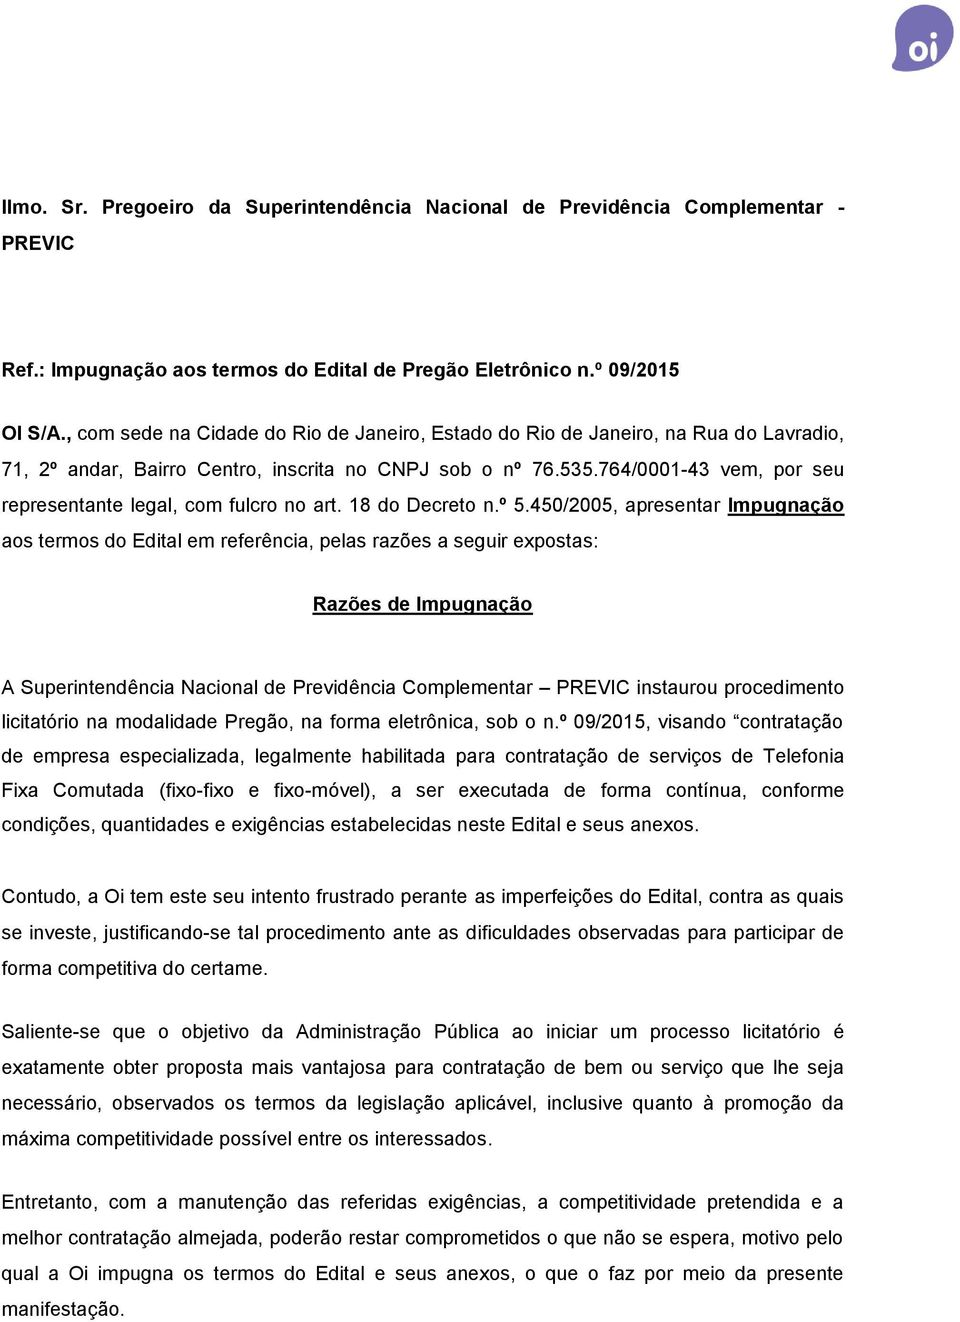 764/0001-43 vem, por seu representante legal, com fulcro no art. 18 do Decreto n.º 5.